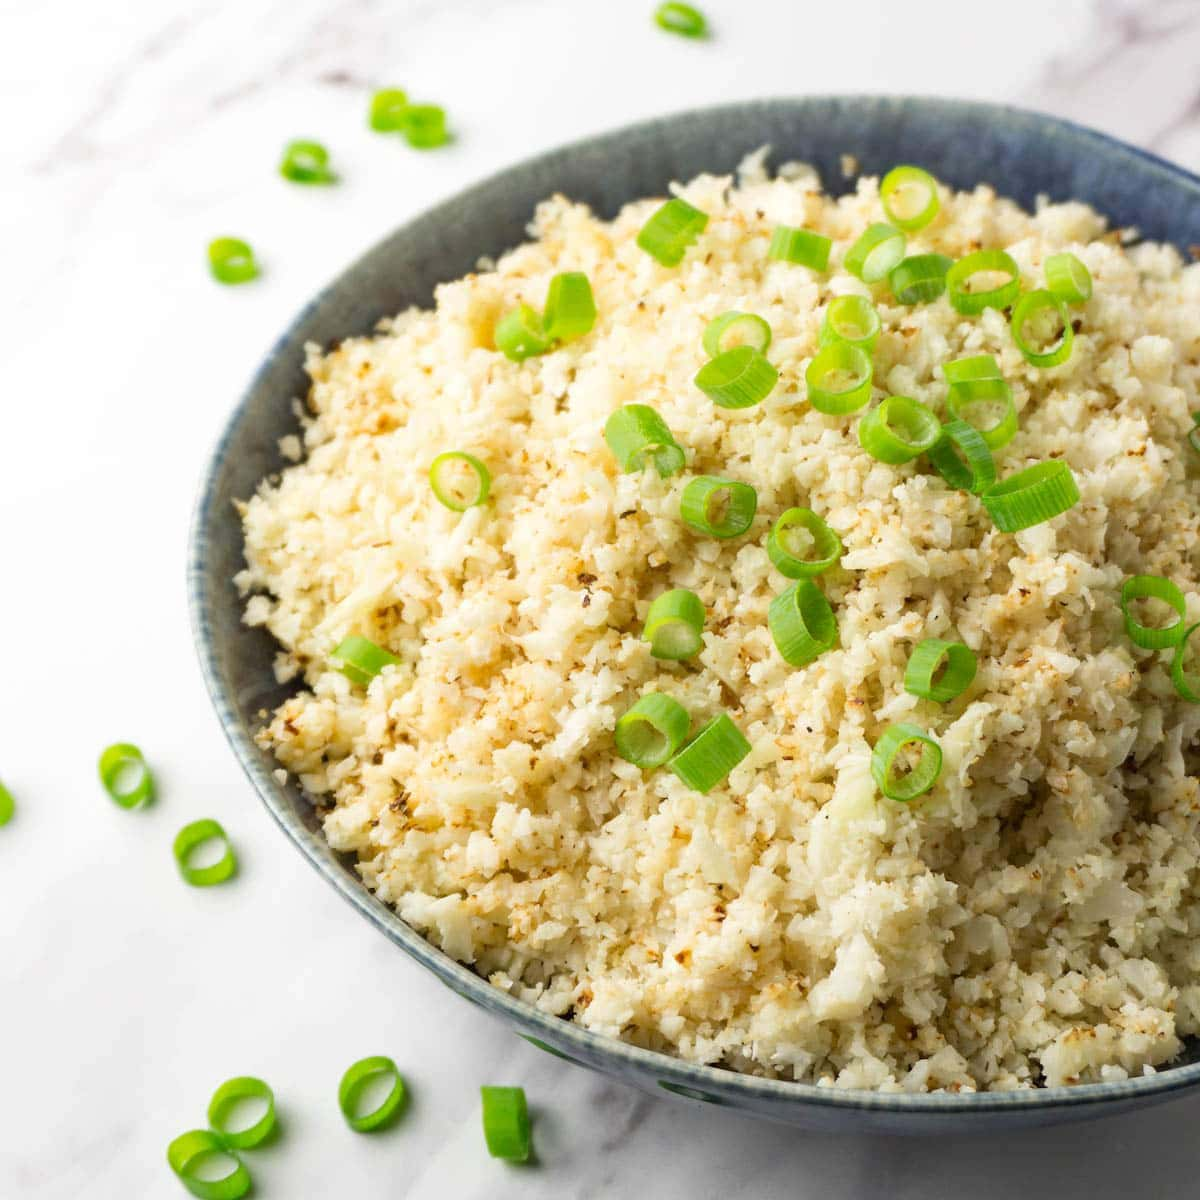 A close up shot of a large blue bowl filled with fluffy cauliflower rice garnished with freshly-chopped spring onions.